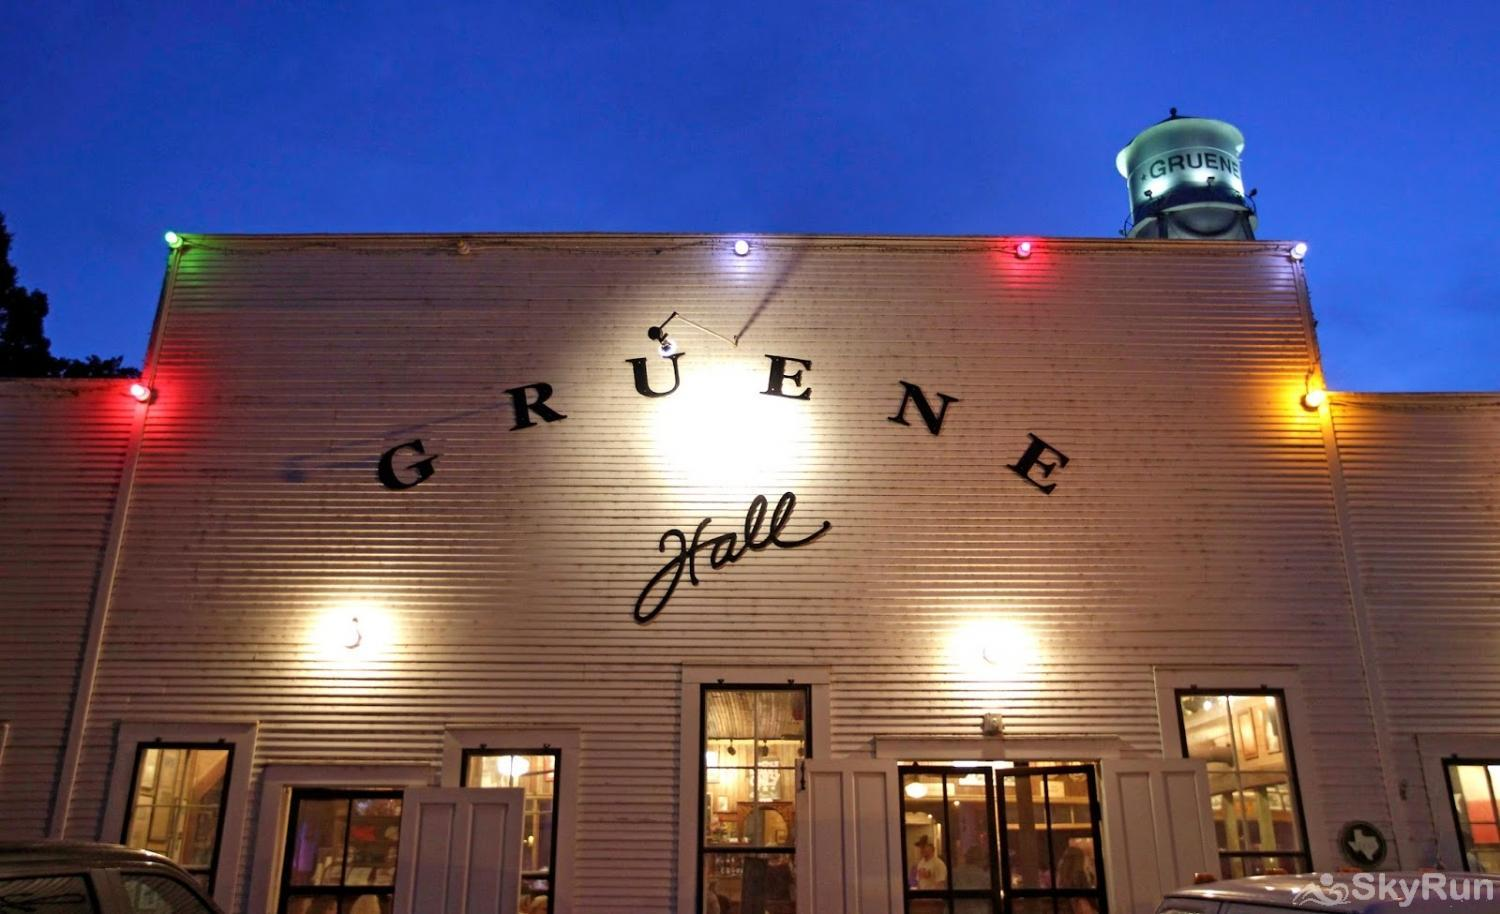 SERENITY SHORES Gruene Hall, 8 miles from Serenity Shores